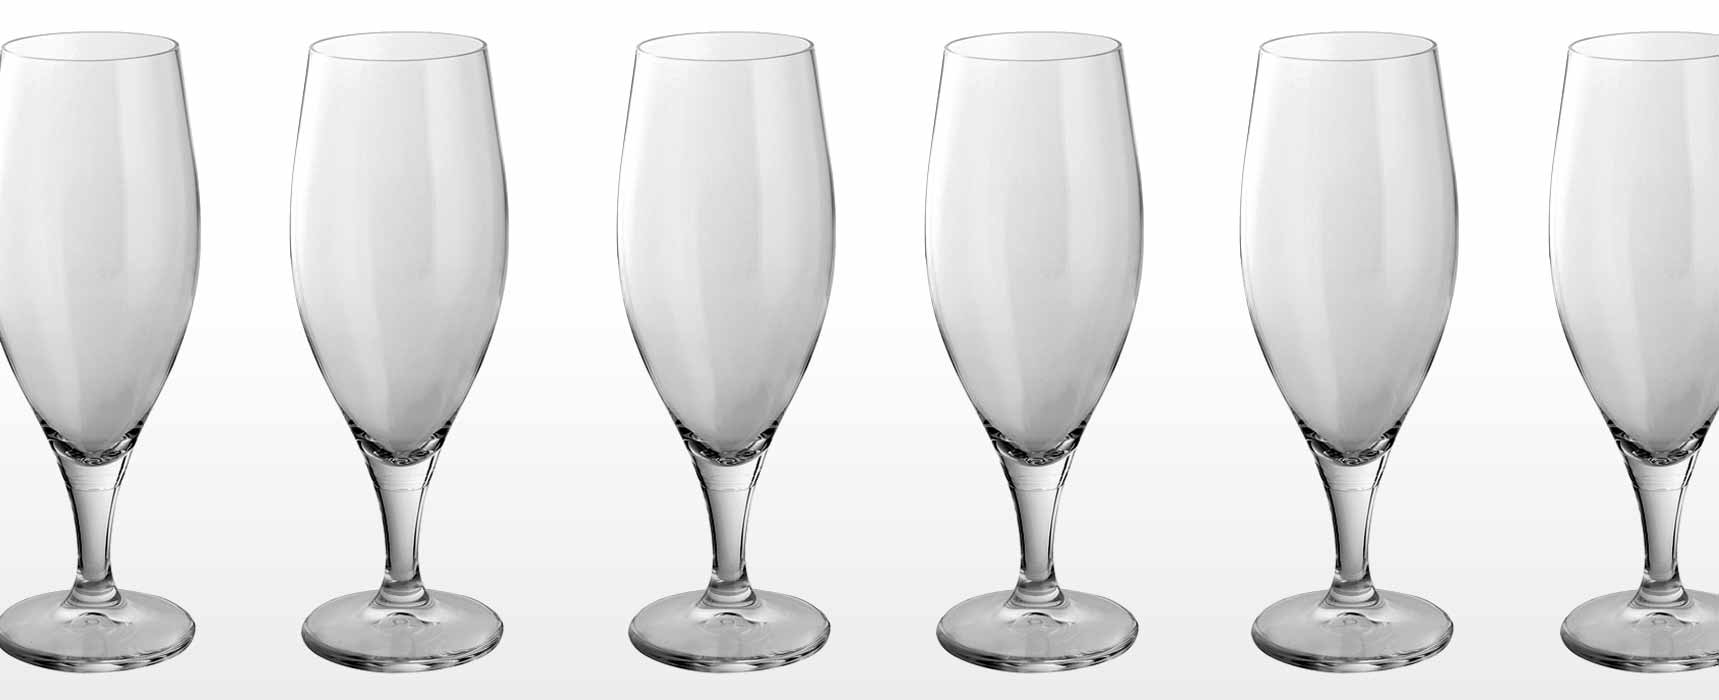 Fine Crystal and glass beer, ale and pilsner glasses